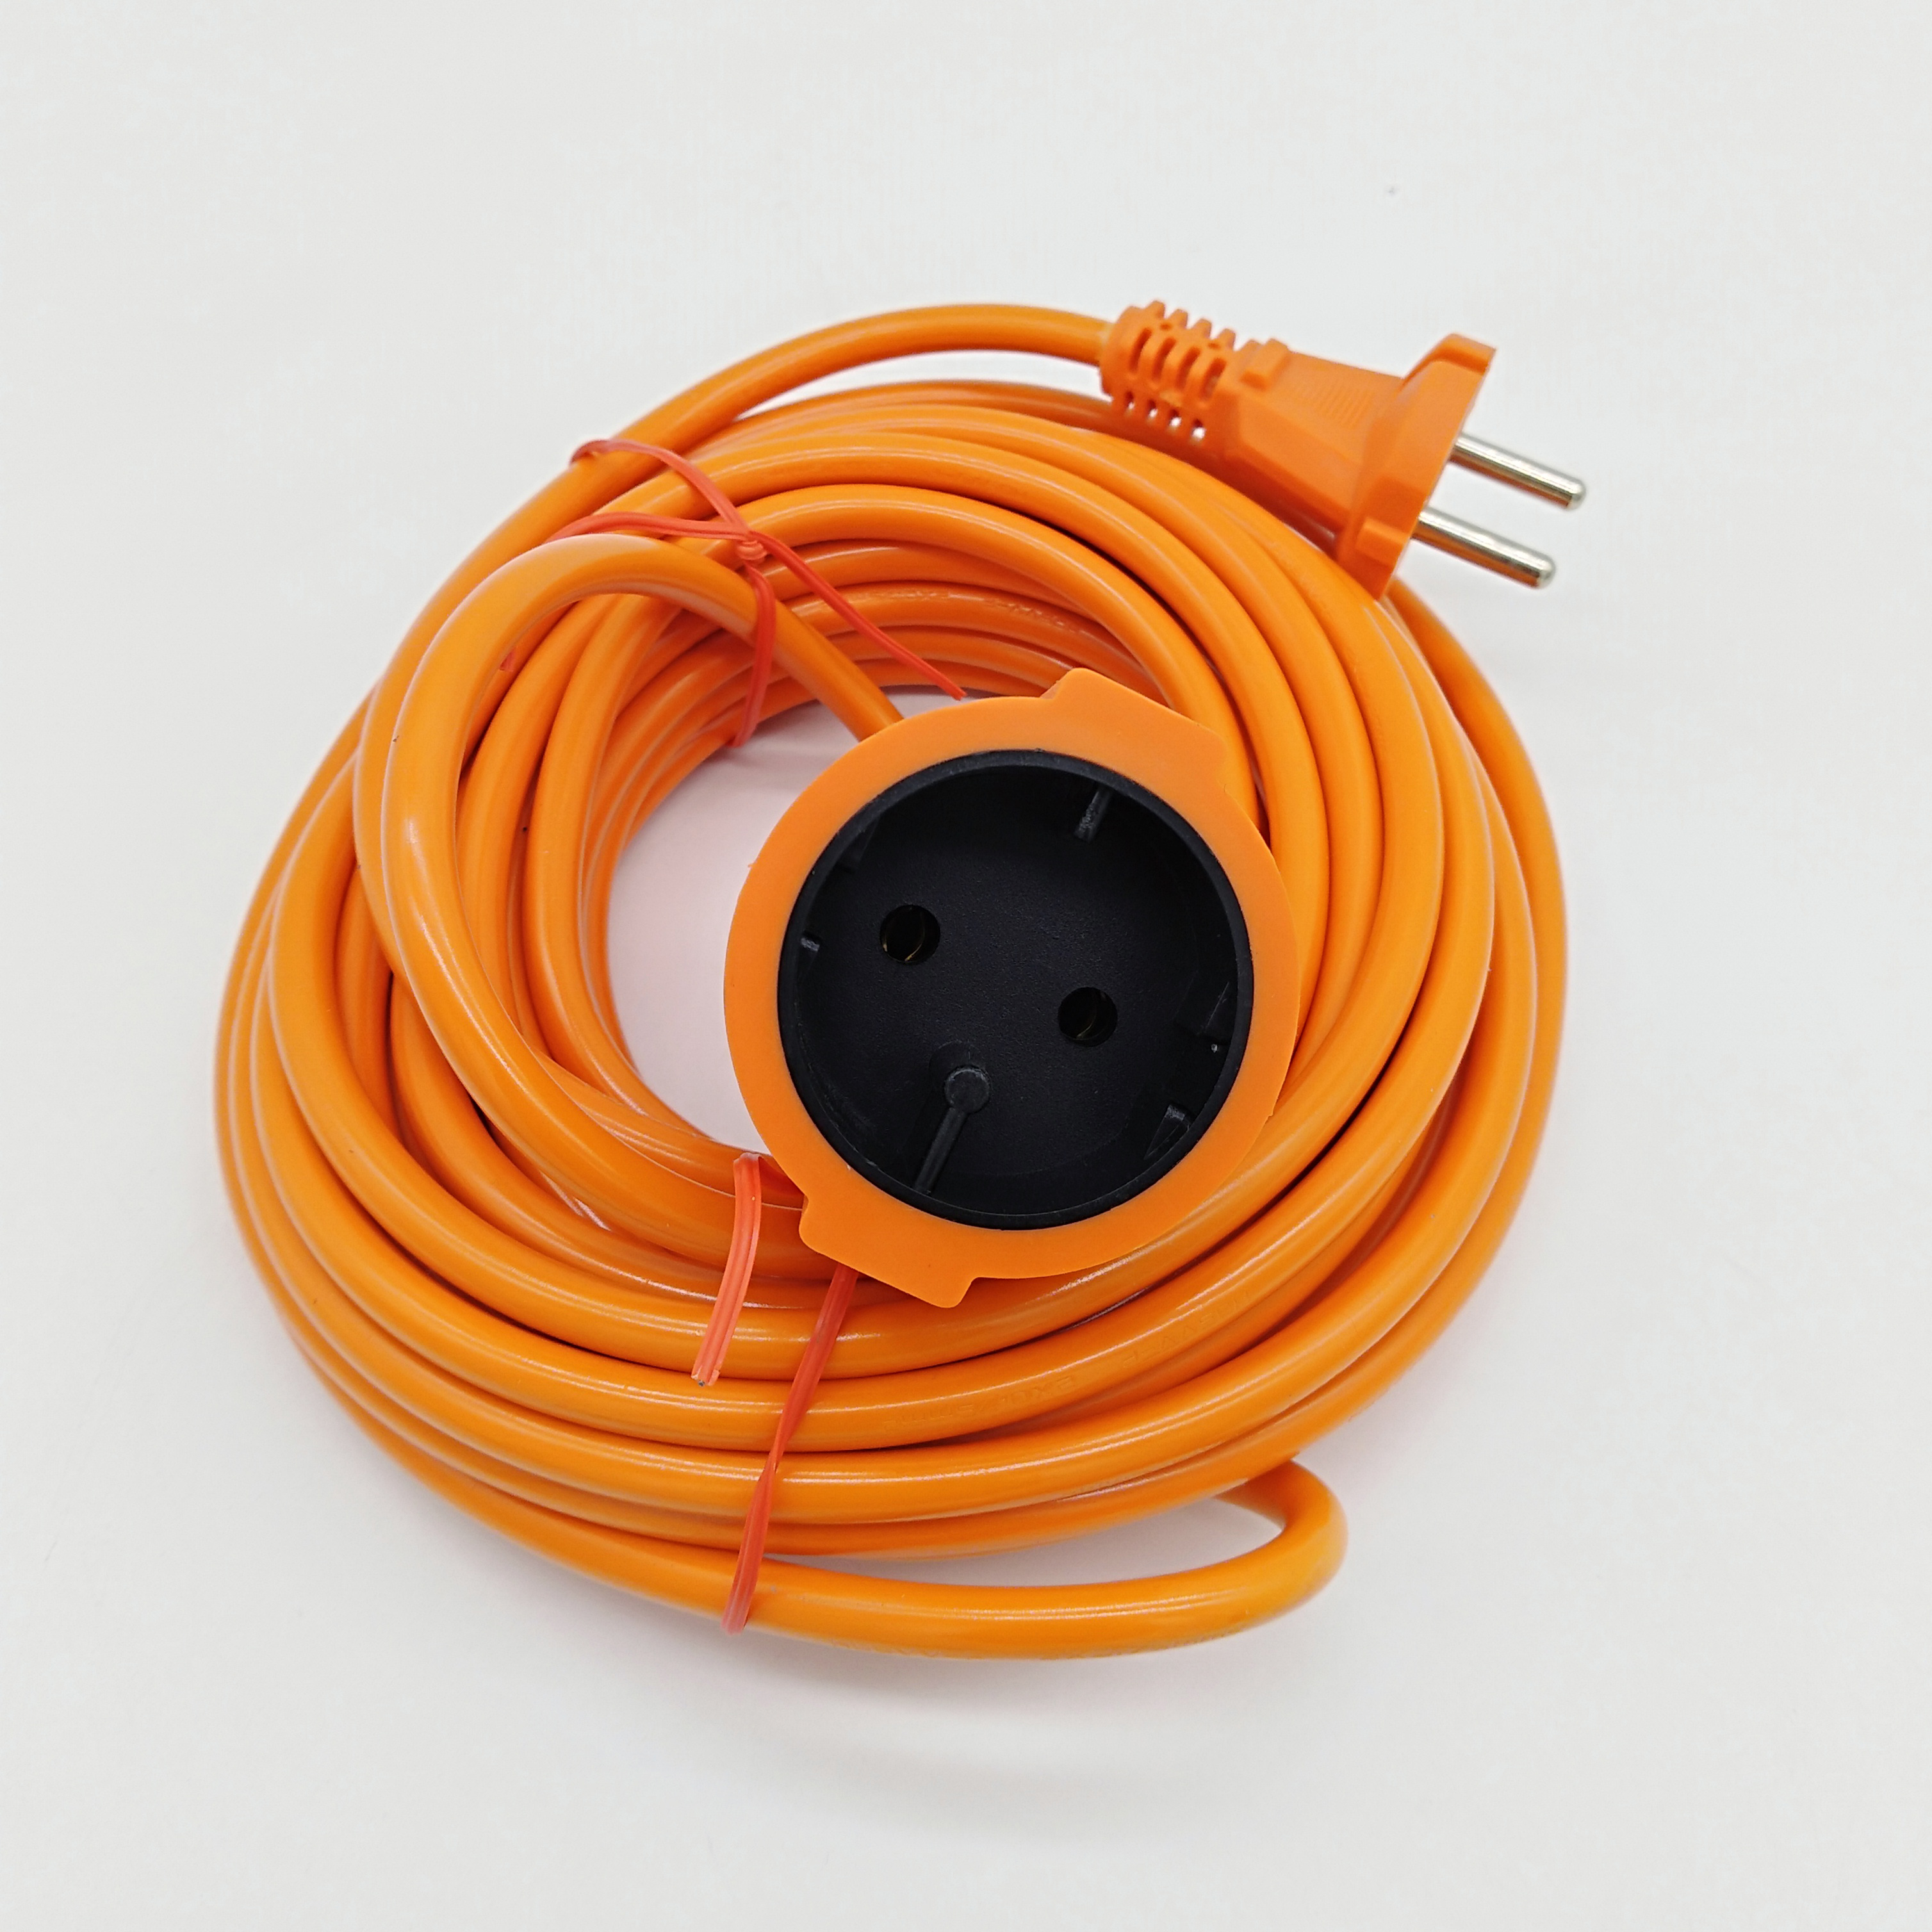 2 Pin Wholesale Quality in <strong>Power</strong> Cords Extension Cord